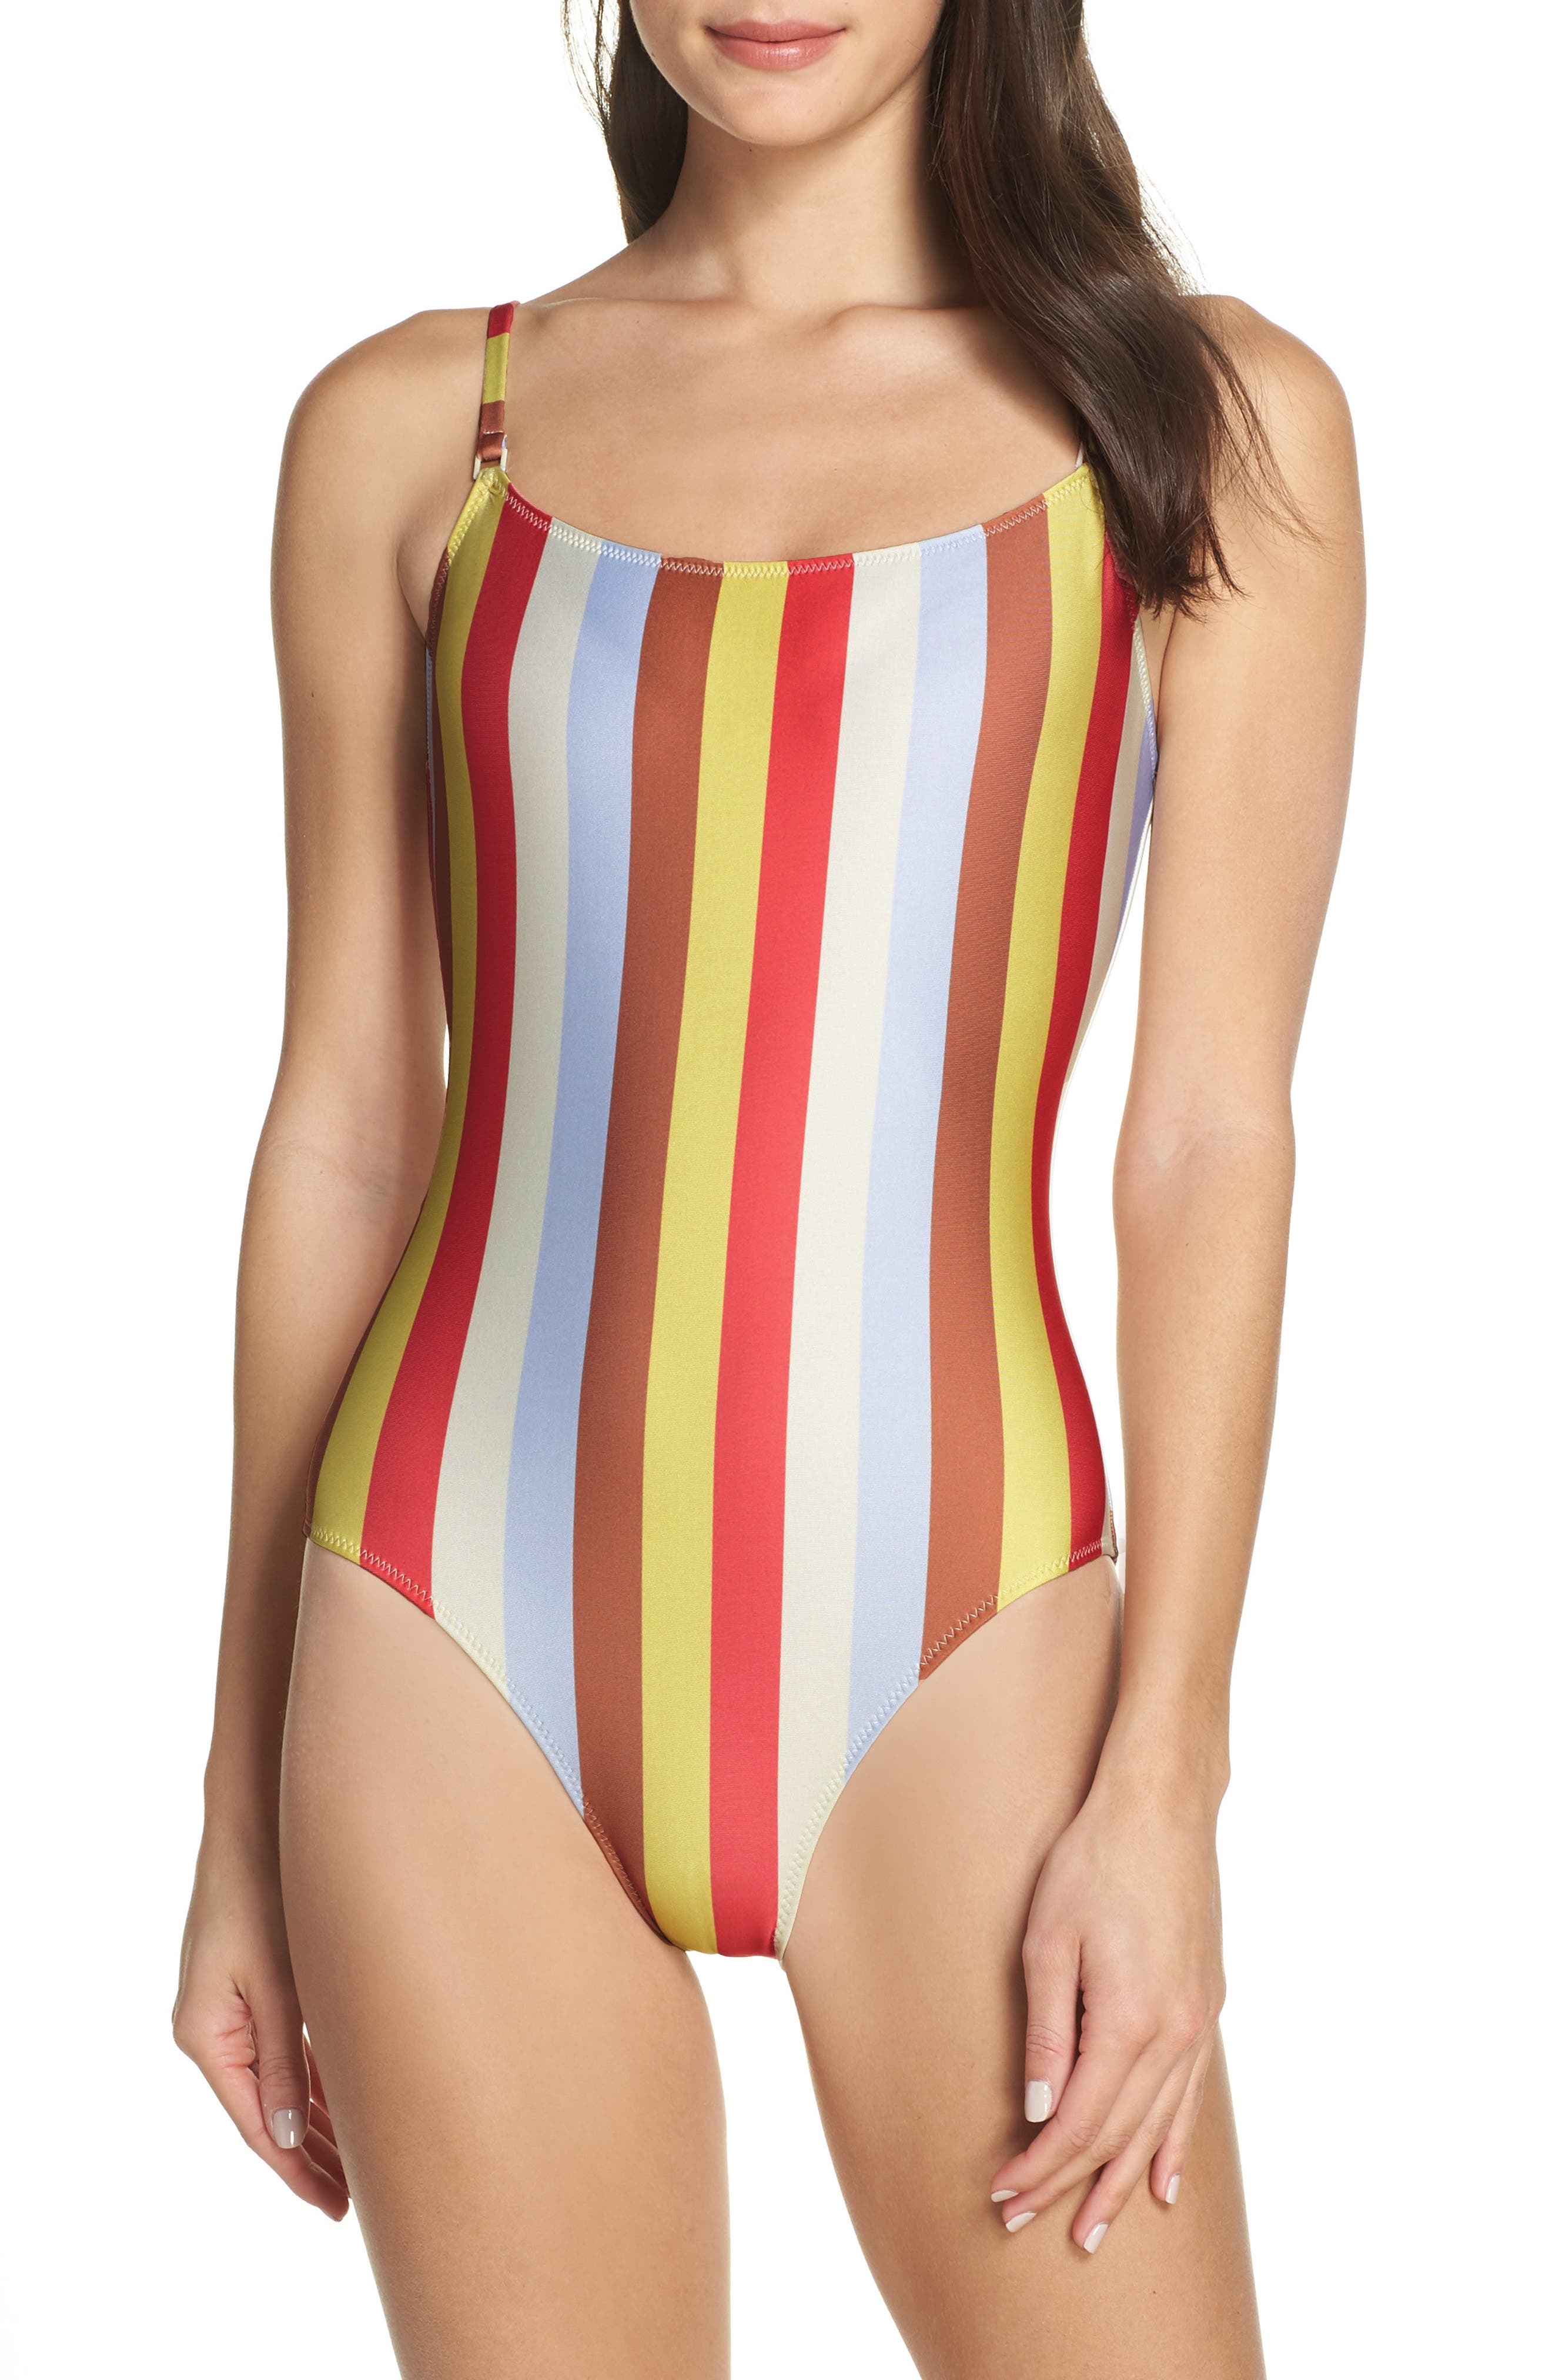 60s Swimsuits, 70s Bathing Suits | Retro Swimwear Womens Solid  Striped The Nina One-Piece Swimsuit $94.80 AT vintagedancer.com